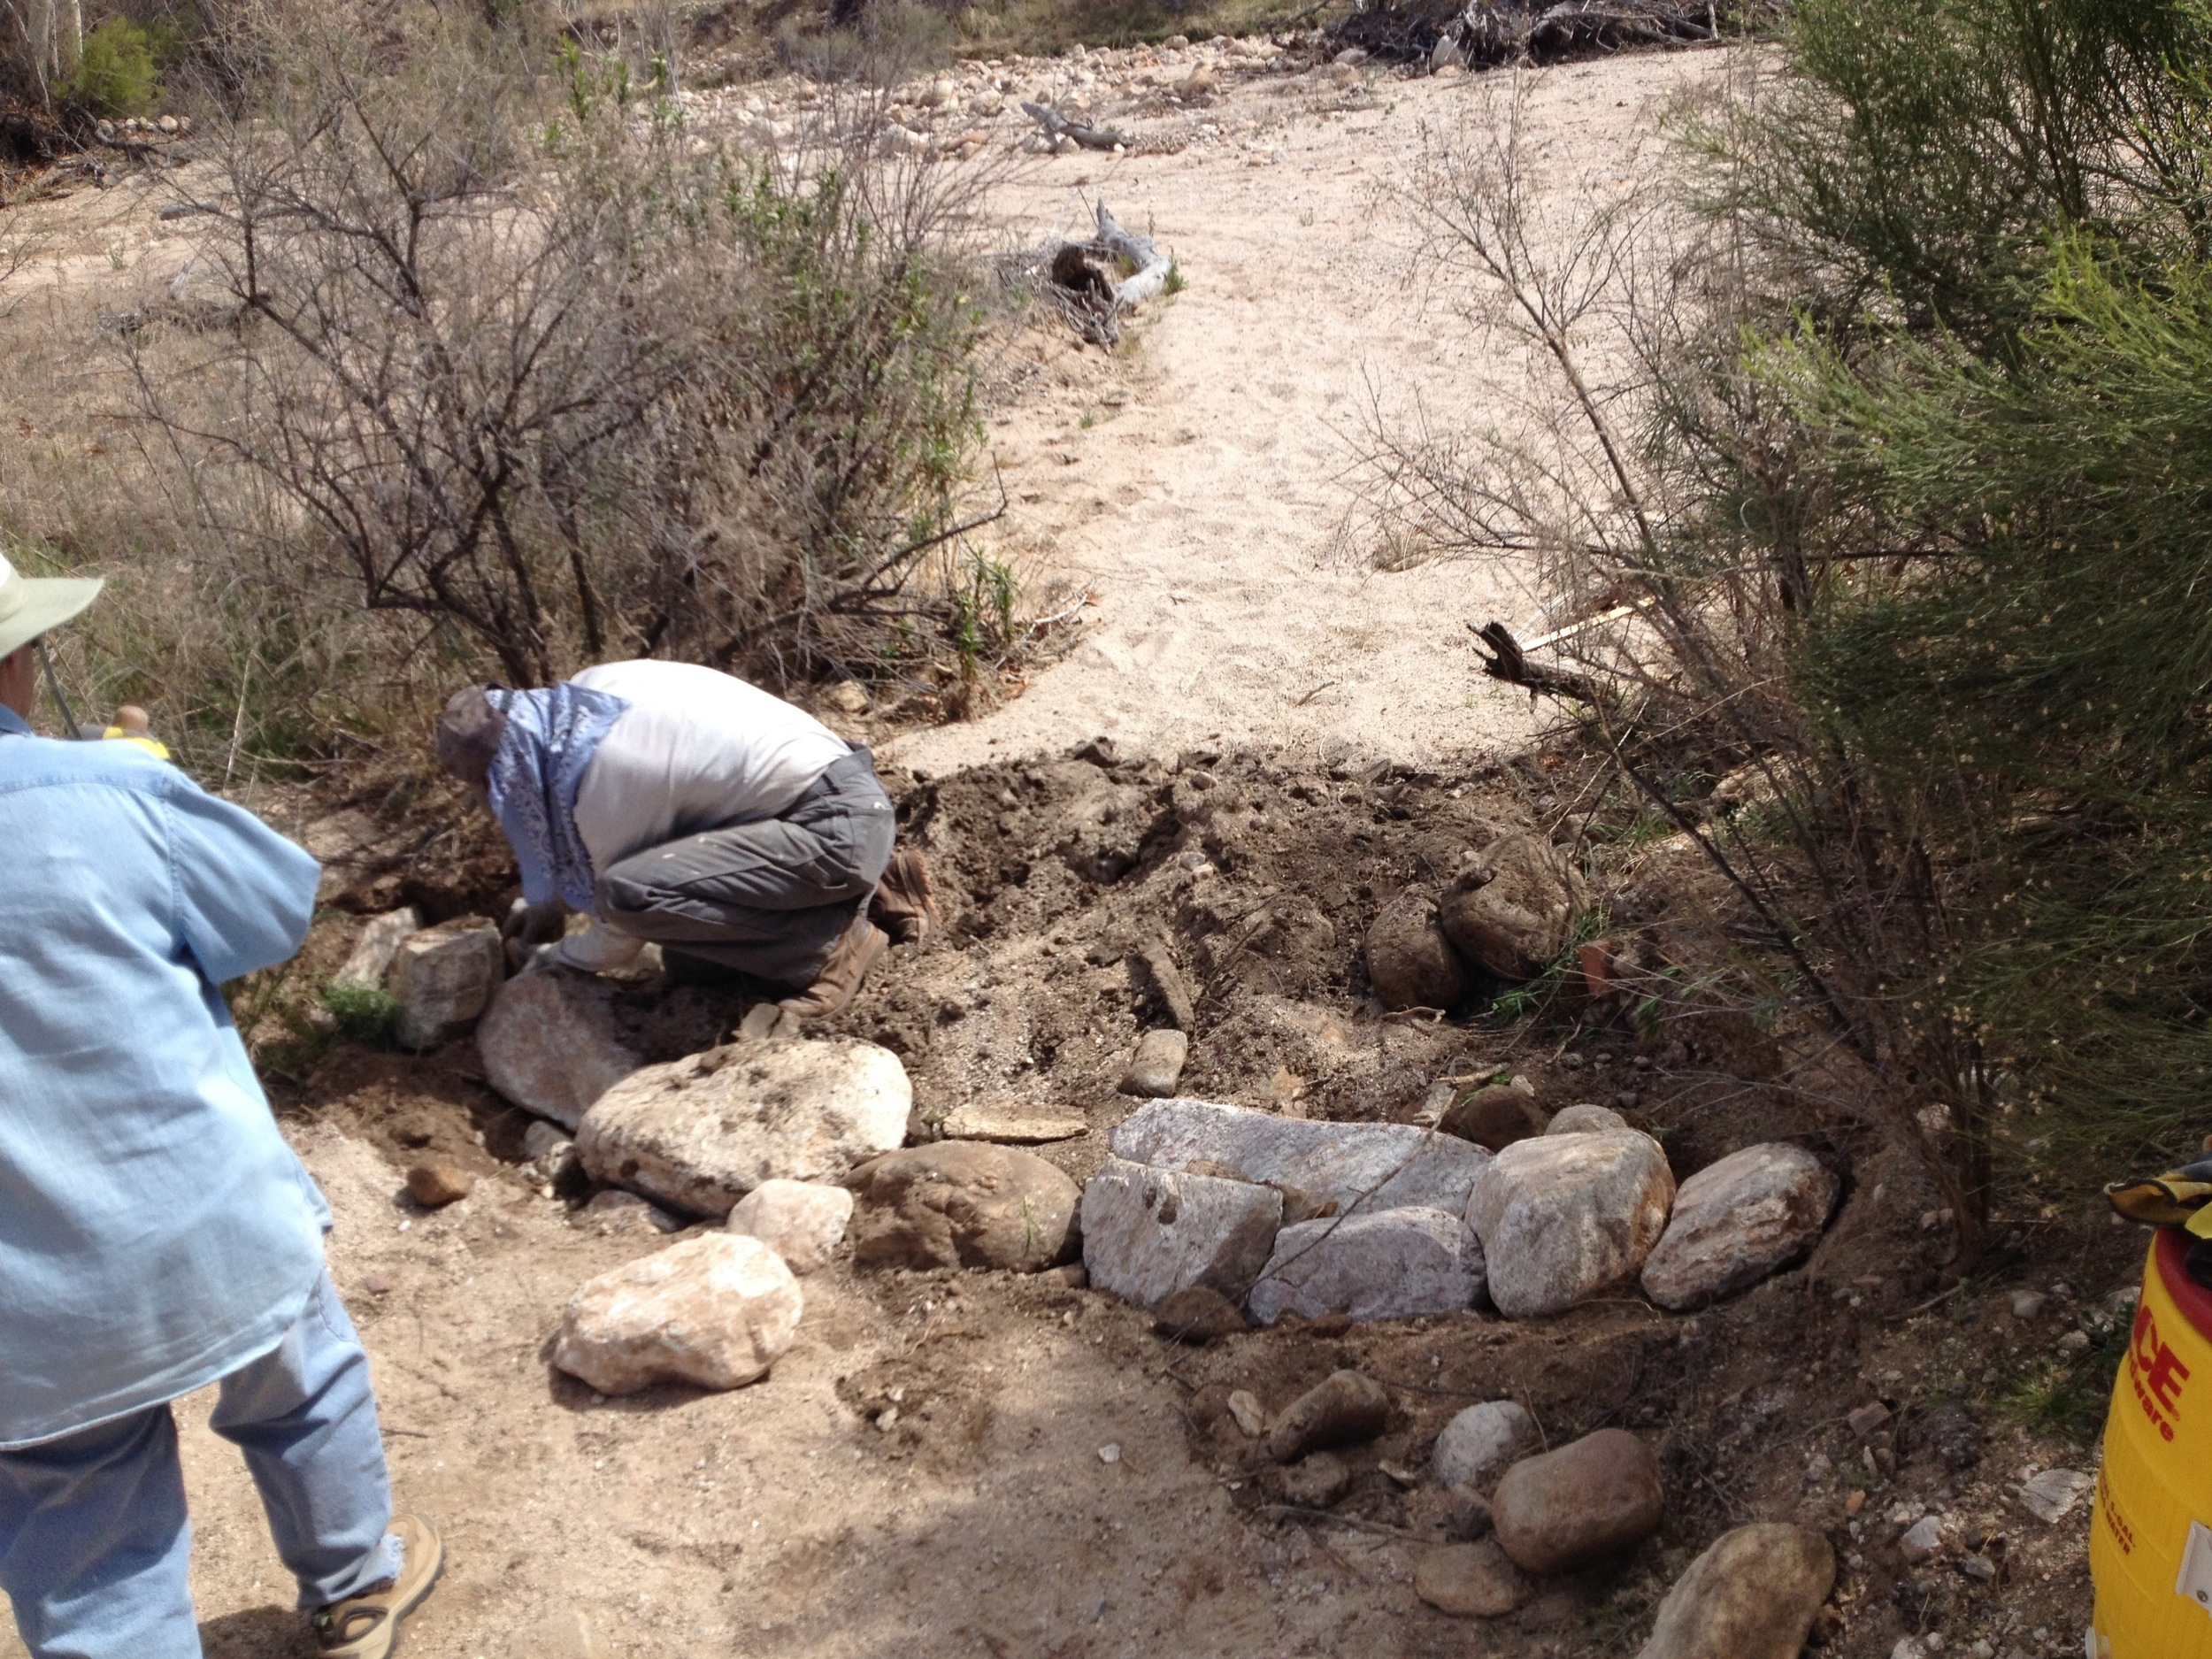 Work begins on the first one rock dam at the mouth of the arroyo.